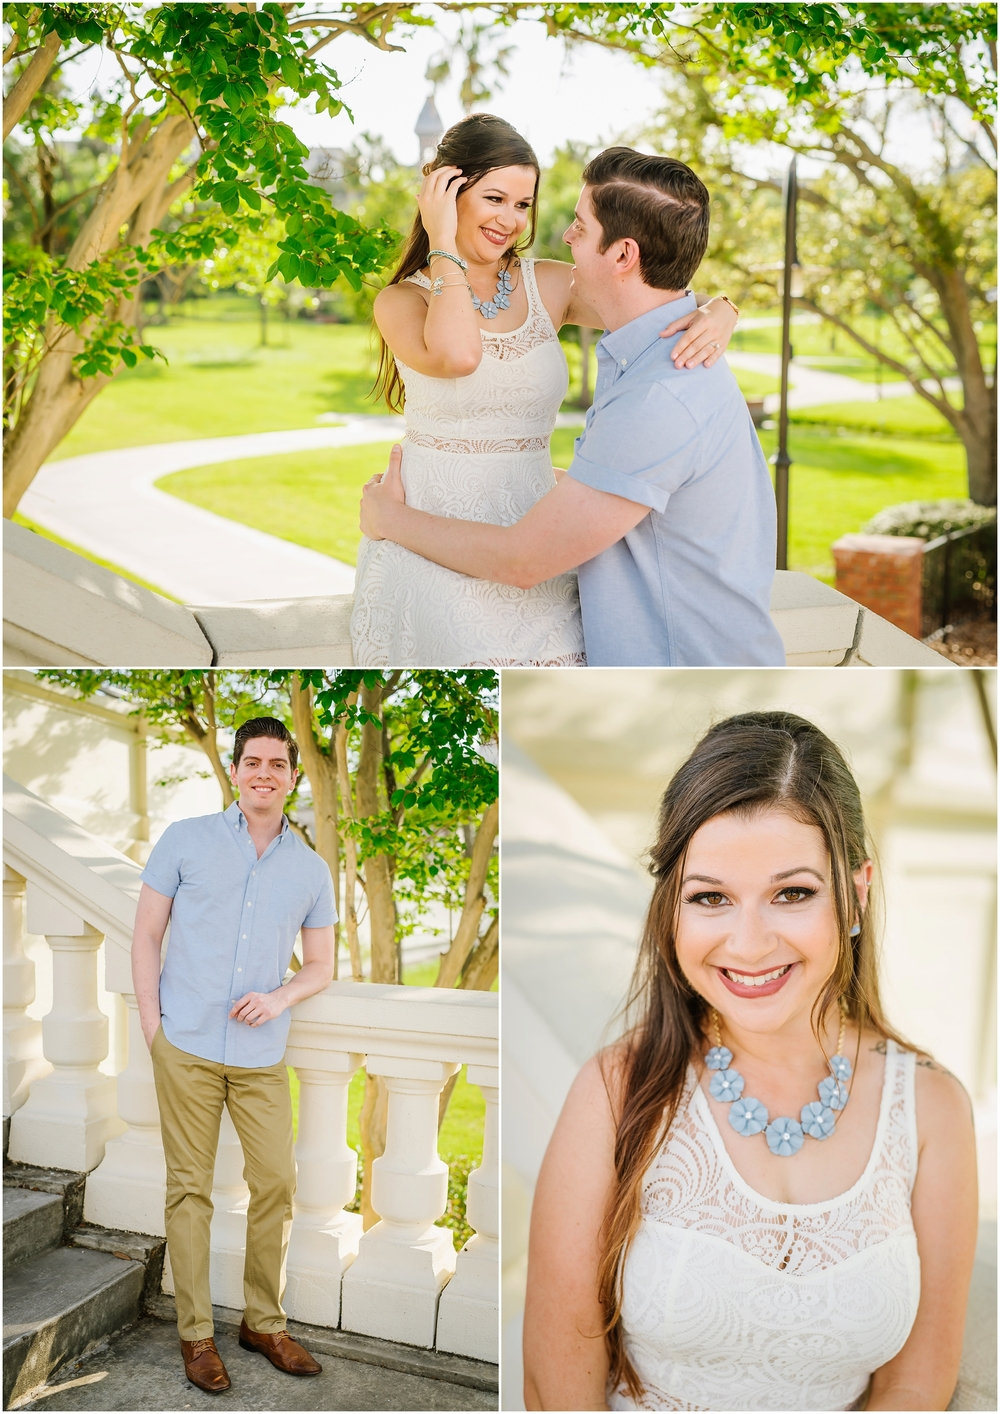 downtown-tampa-engagement-photography-ashlee-hamon_0003.jpg